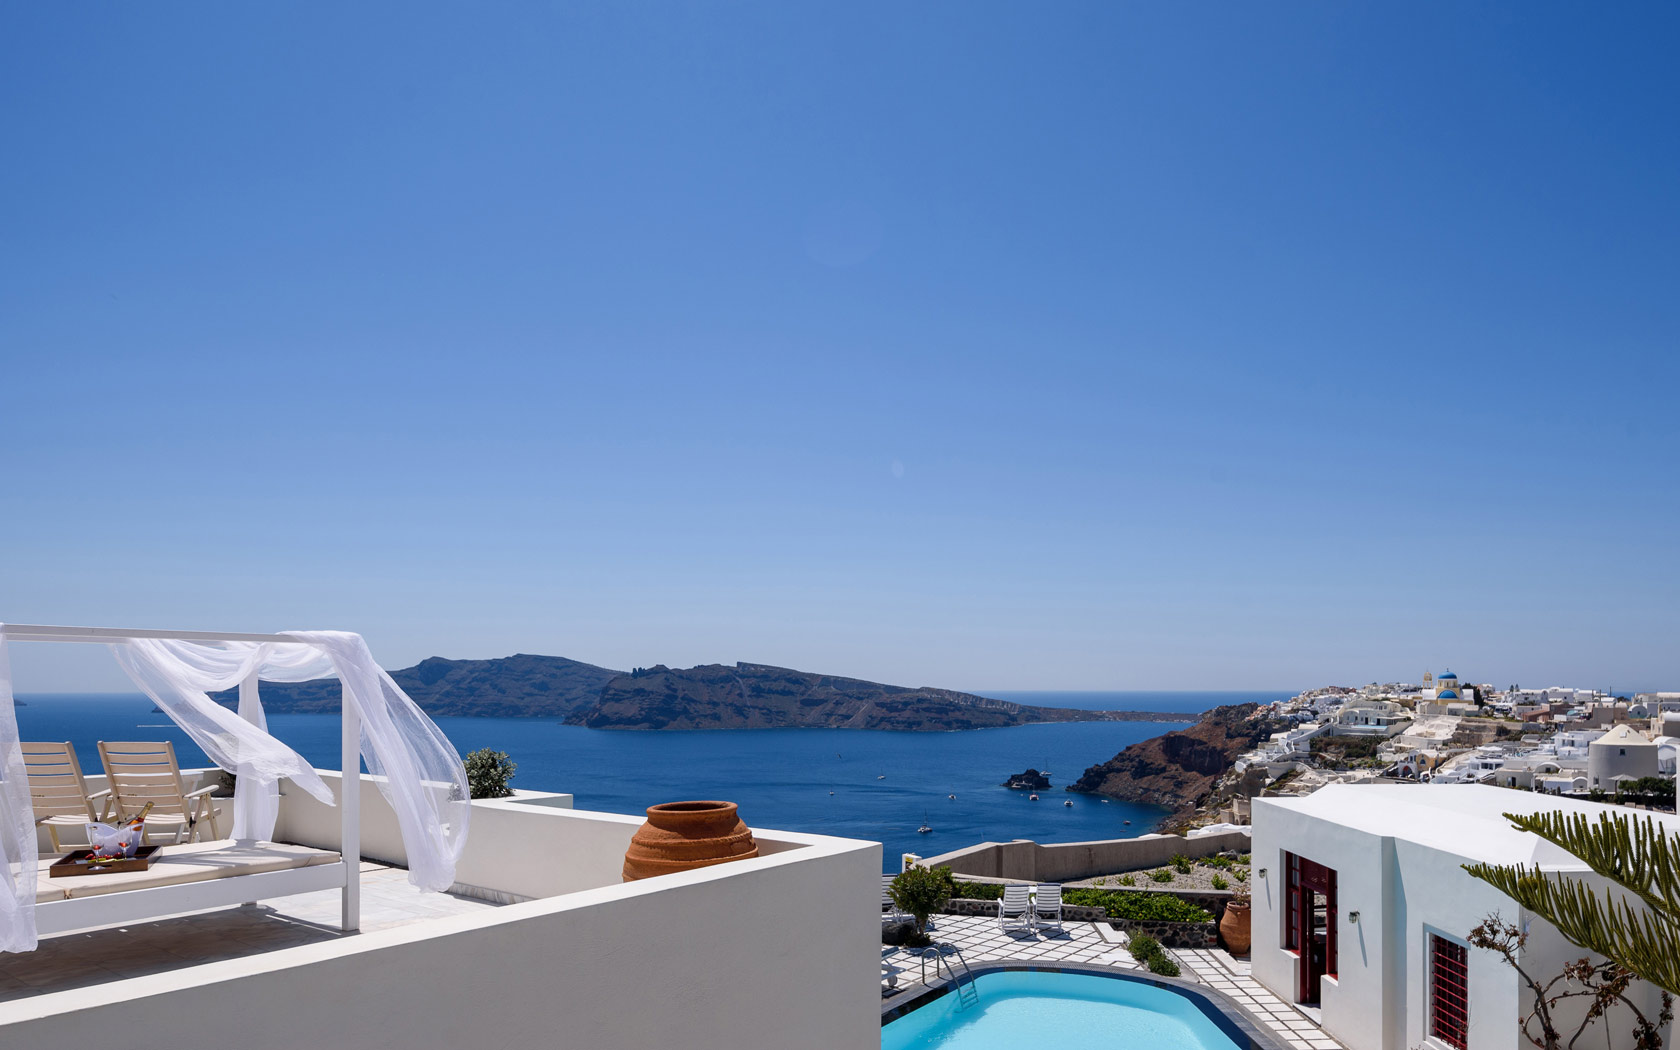 Oia Santorini Hotel Suites with sea view